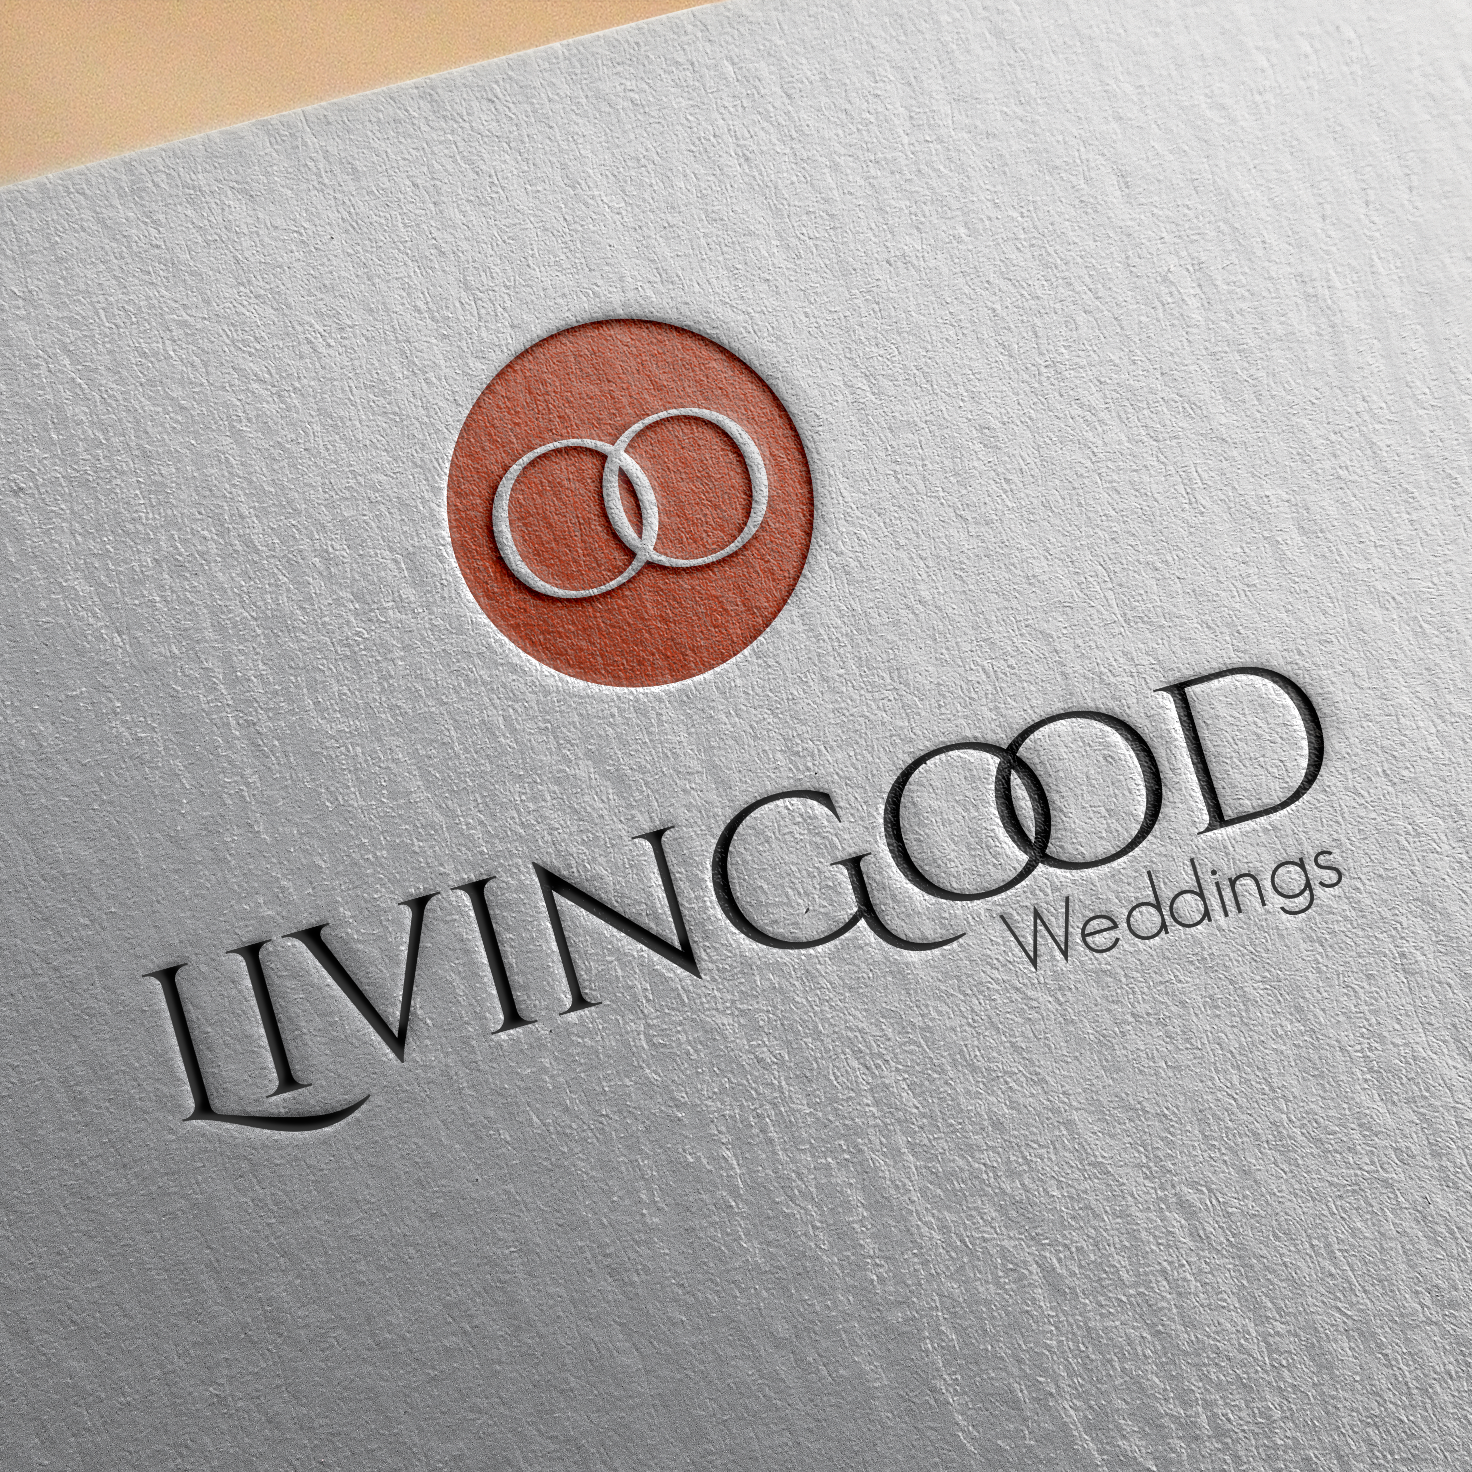 Livingood Weddings Mockup Logo Design Mockup